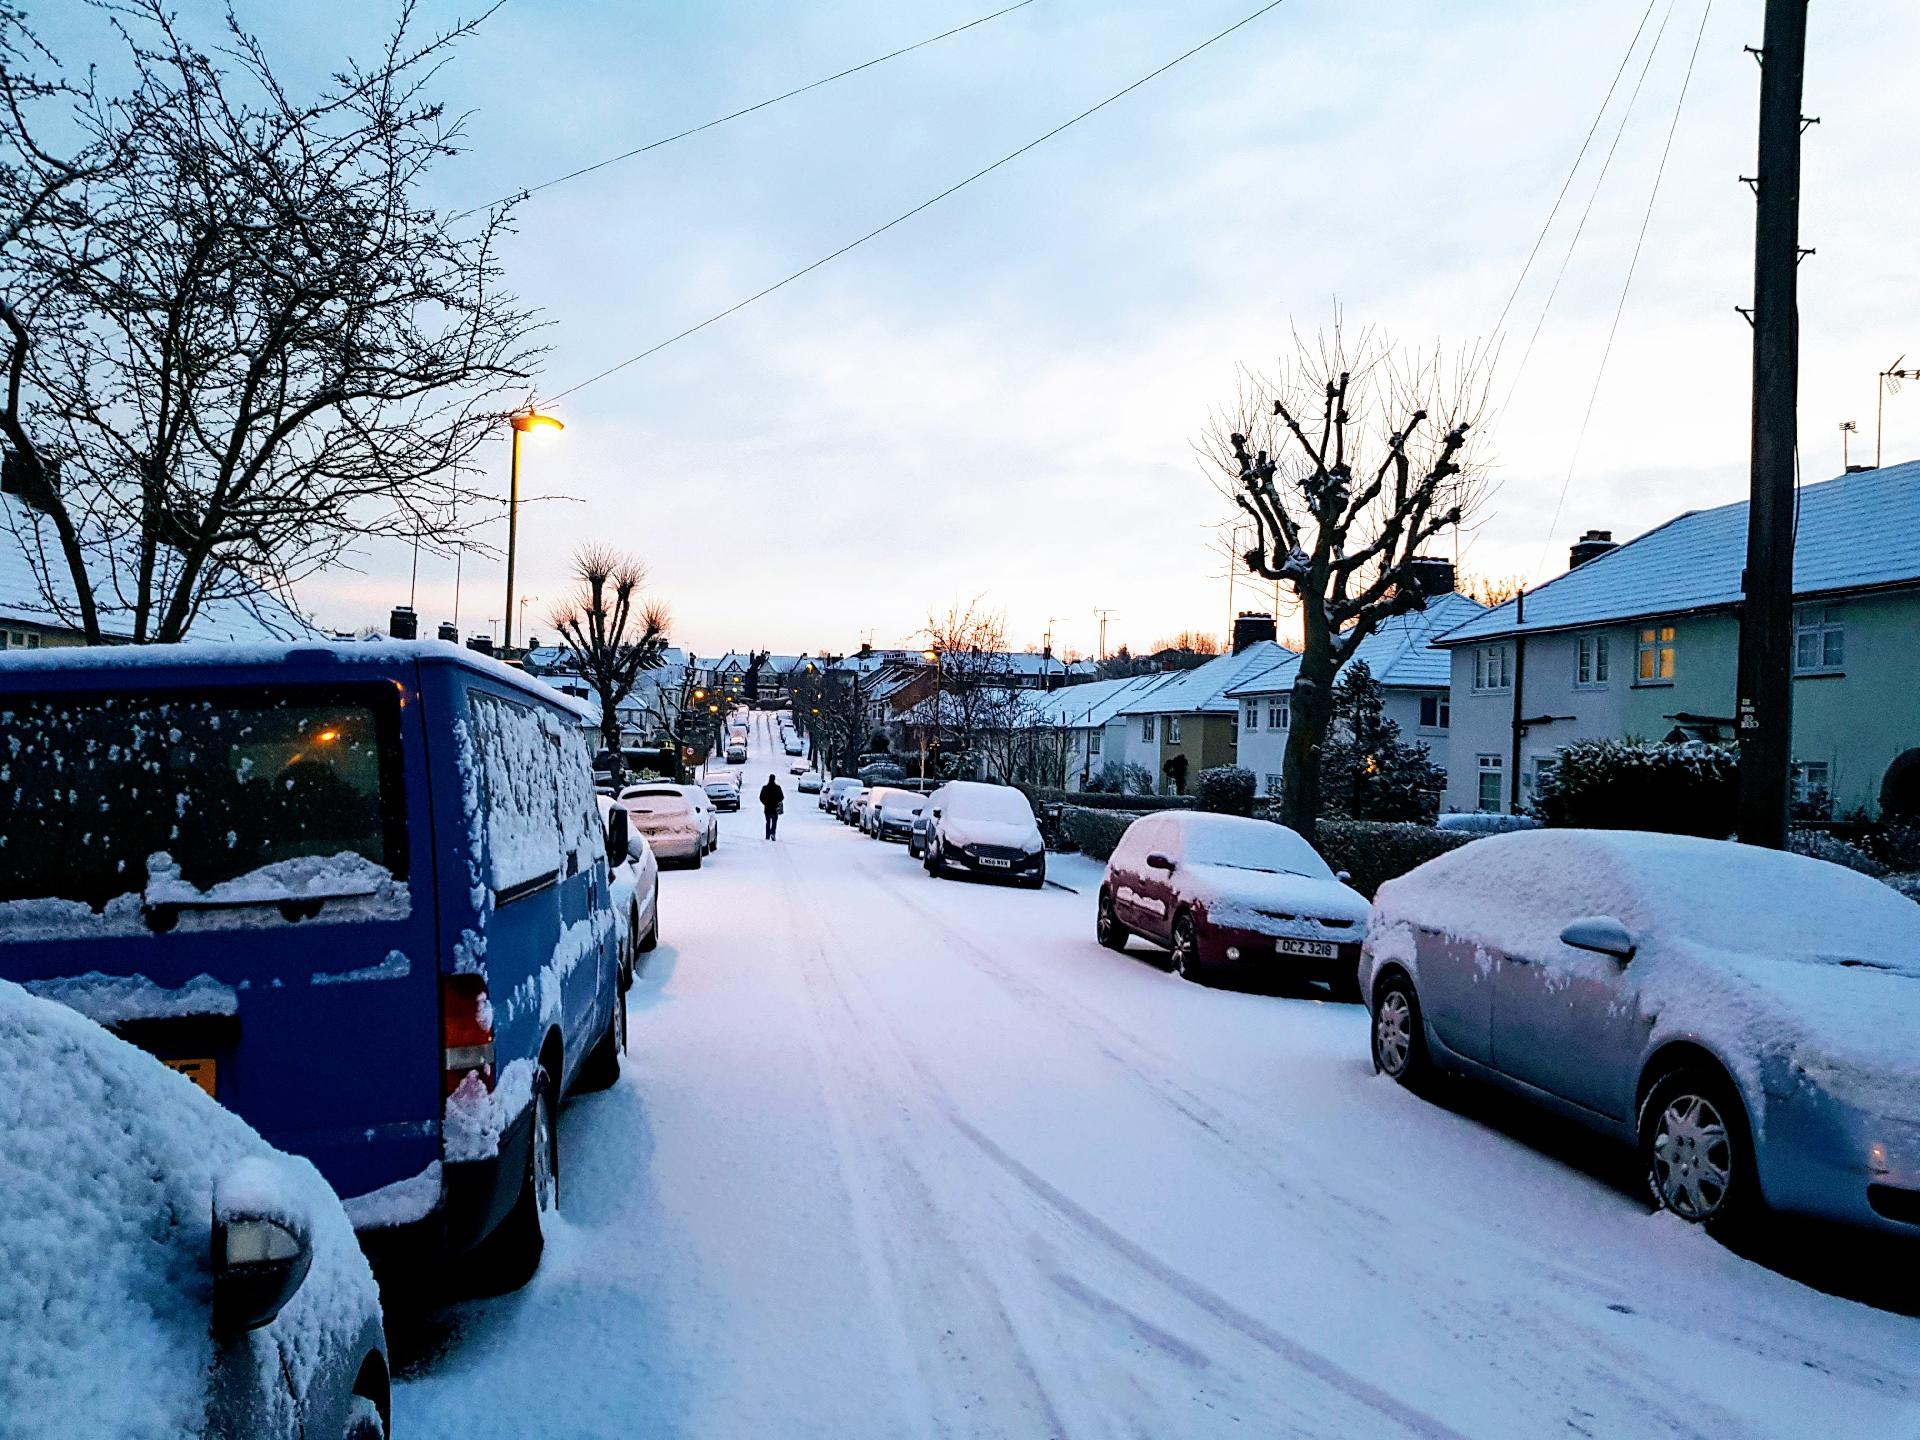 UK Street in Winter. Hard day for Boiler Fitters